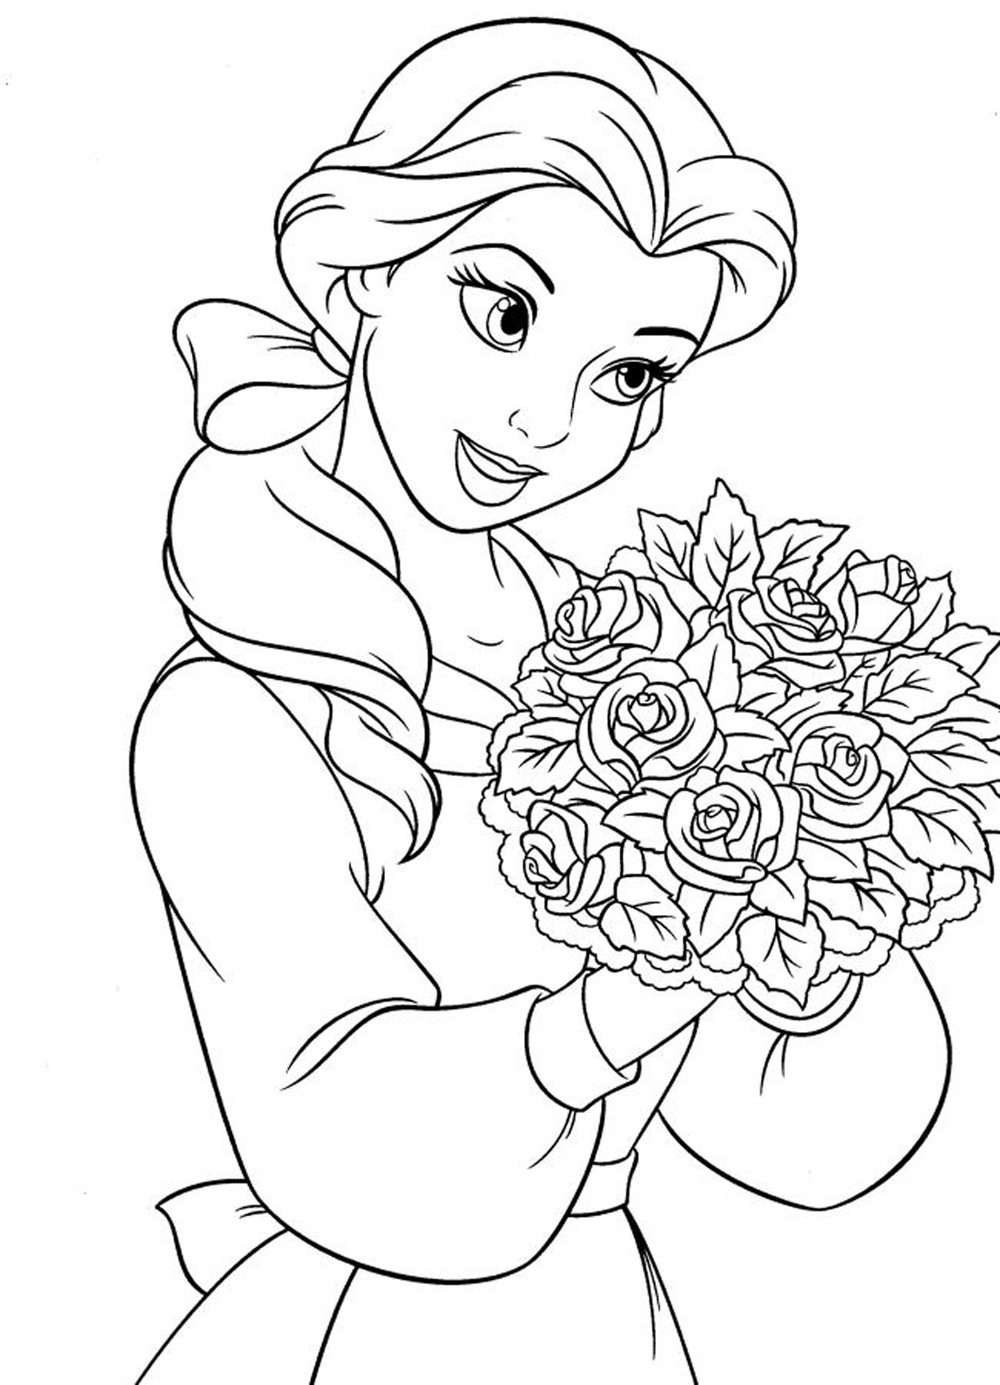 adult disney coloring pages - free printable disney princess coloring pages for kids